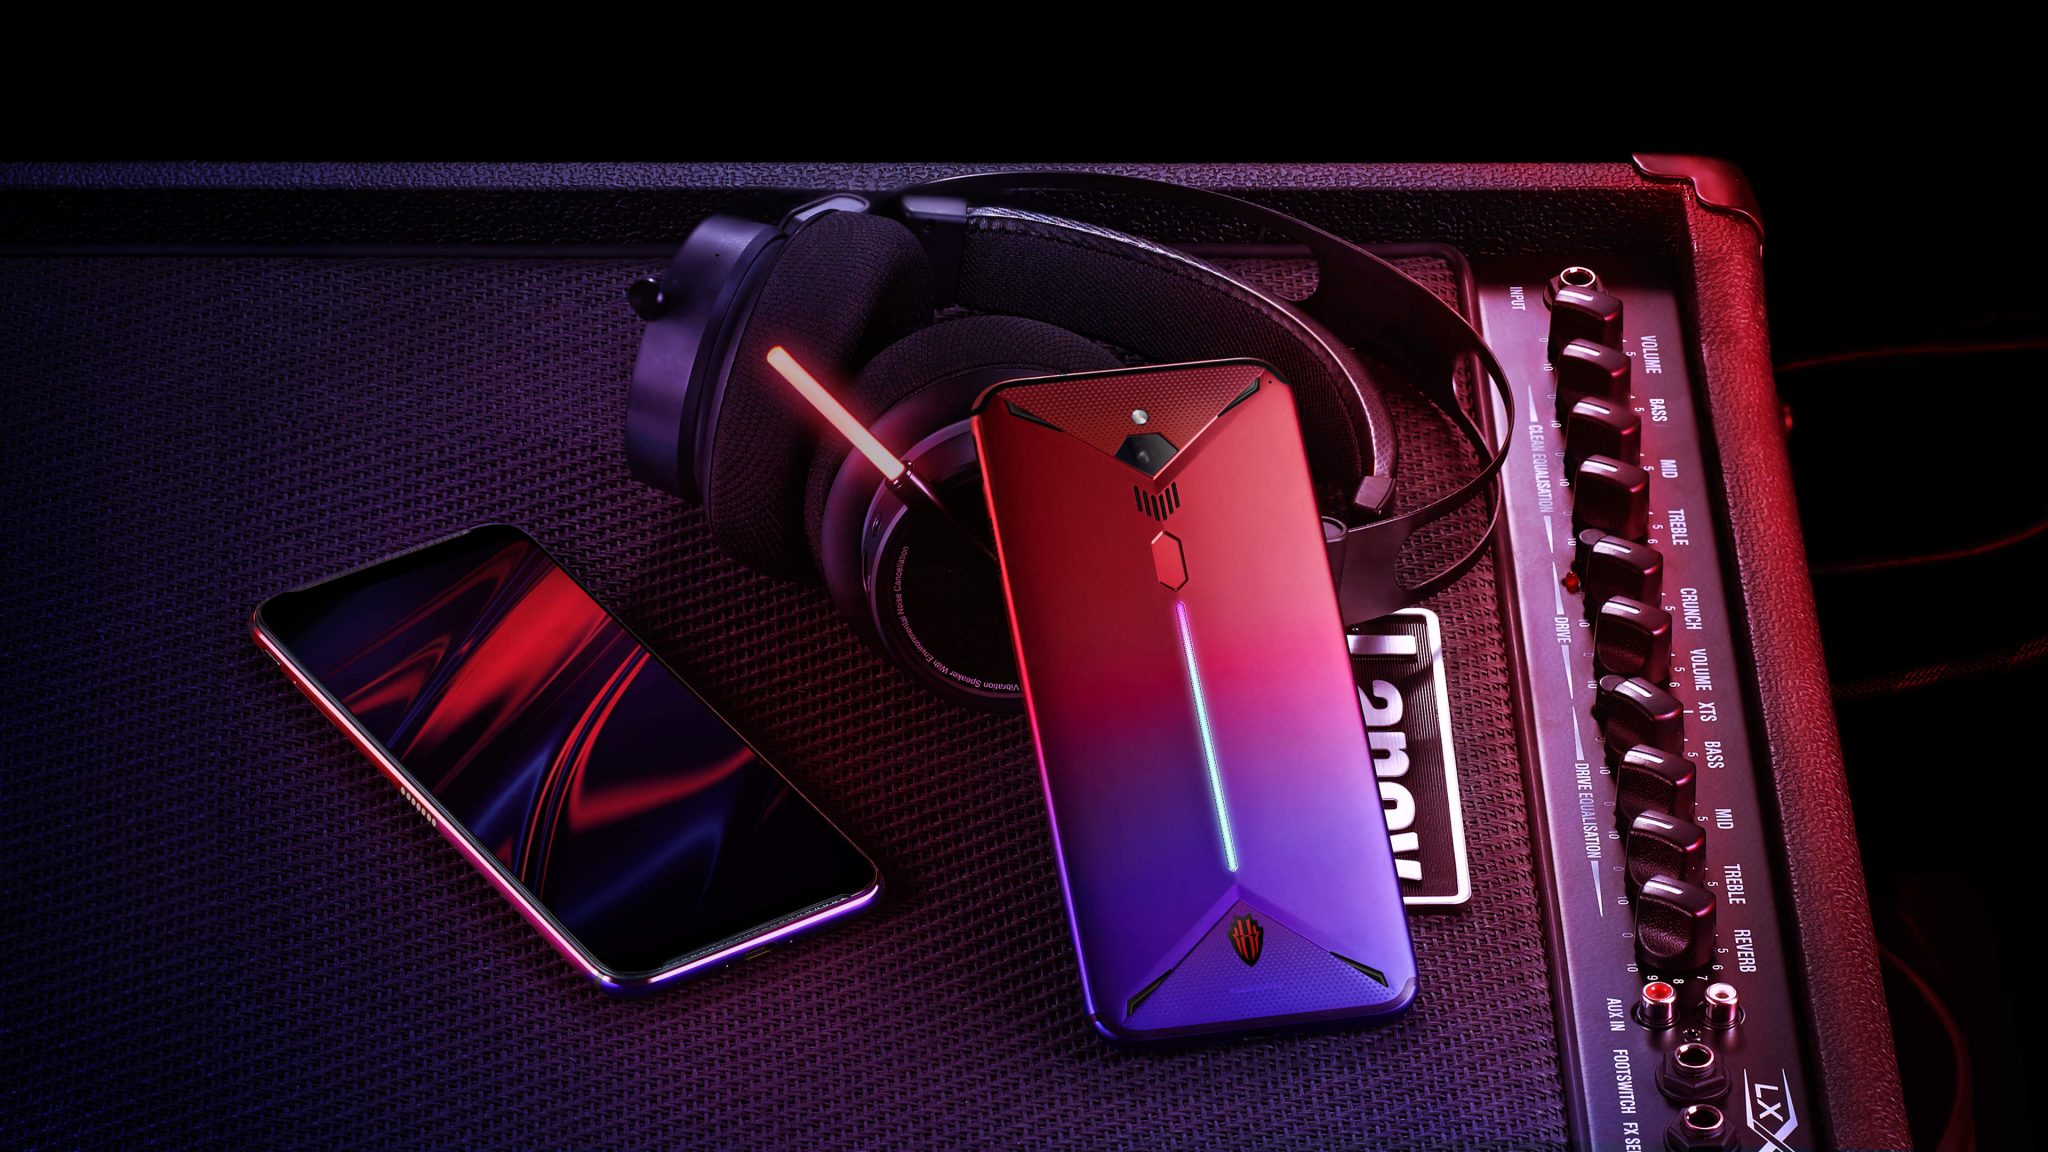 Il nuovo Nubia Red Magic gaming phone avrà un display da 144Hz thumbnail